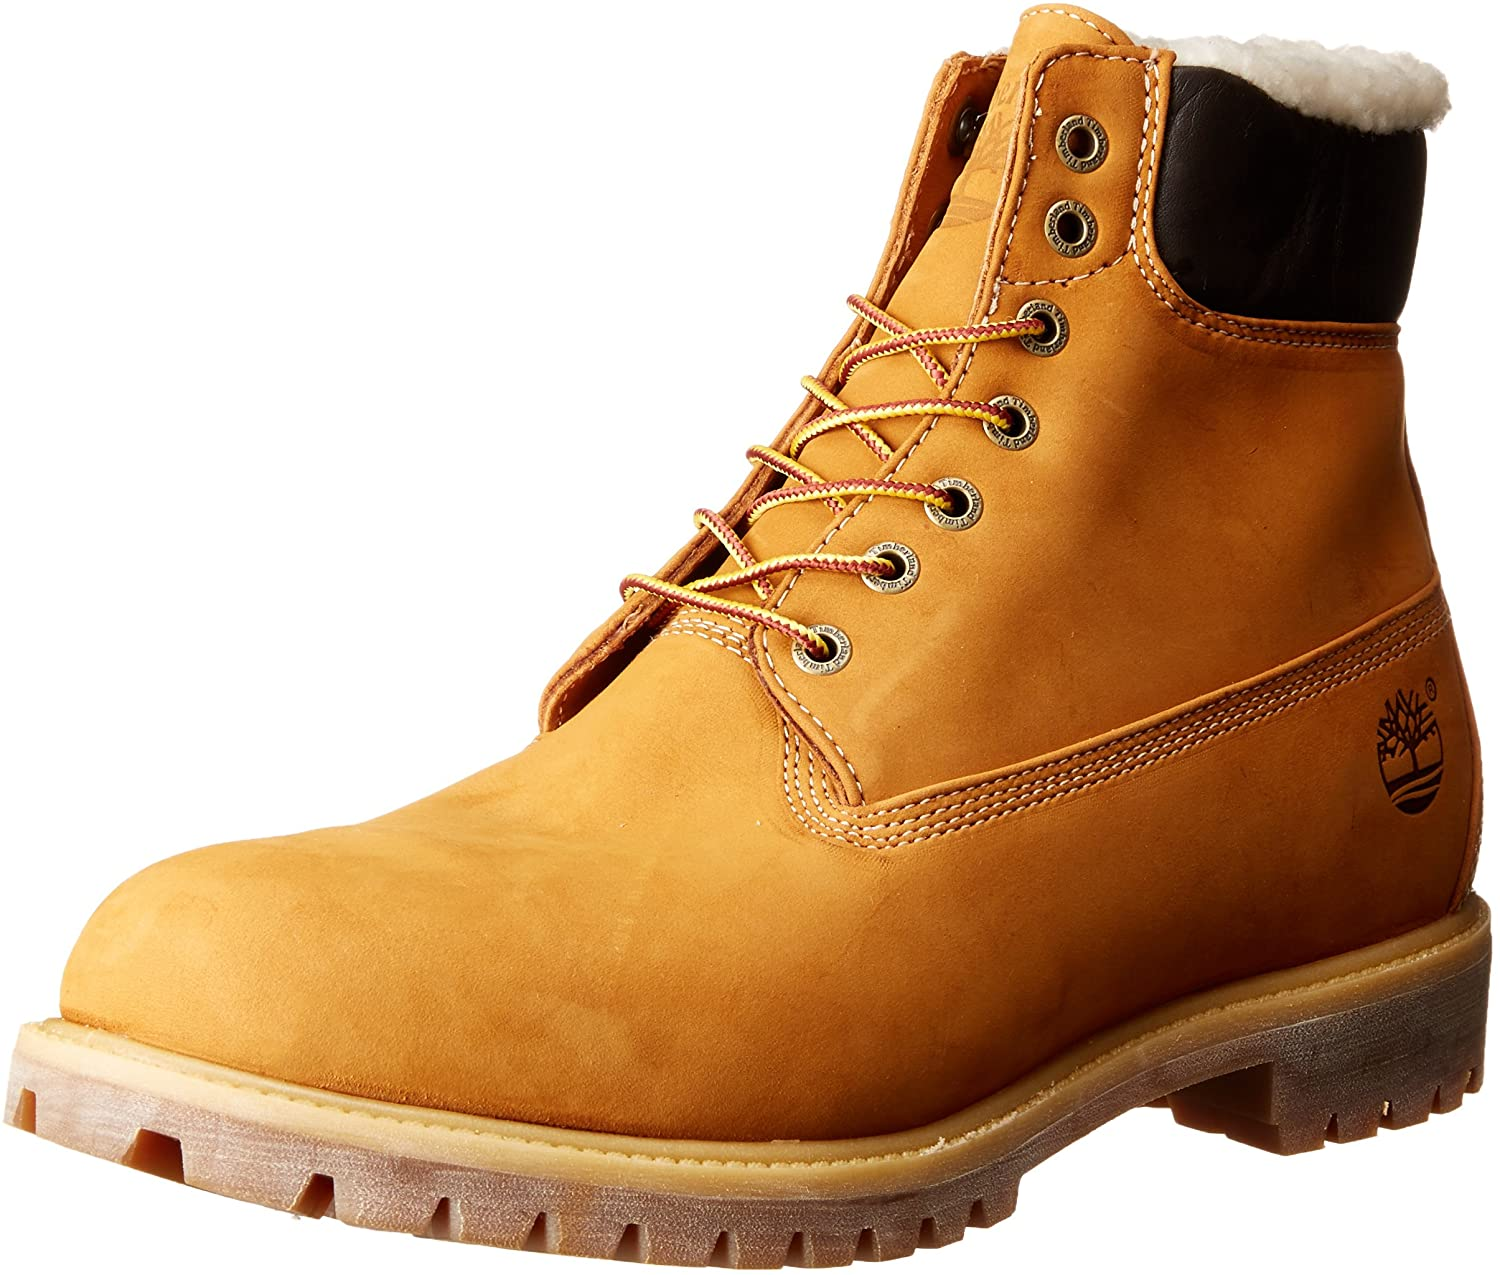 Timberland Heritage 6 Warm Lined Boot